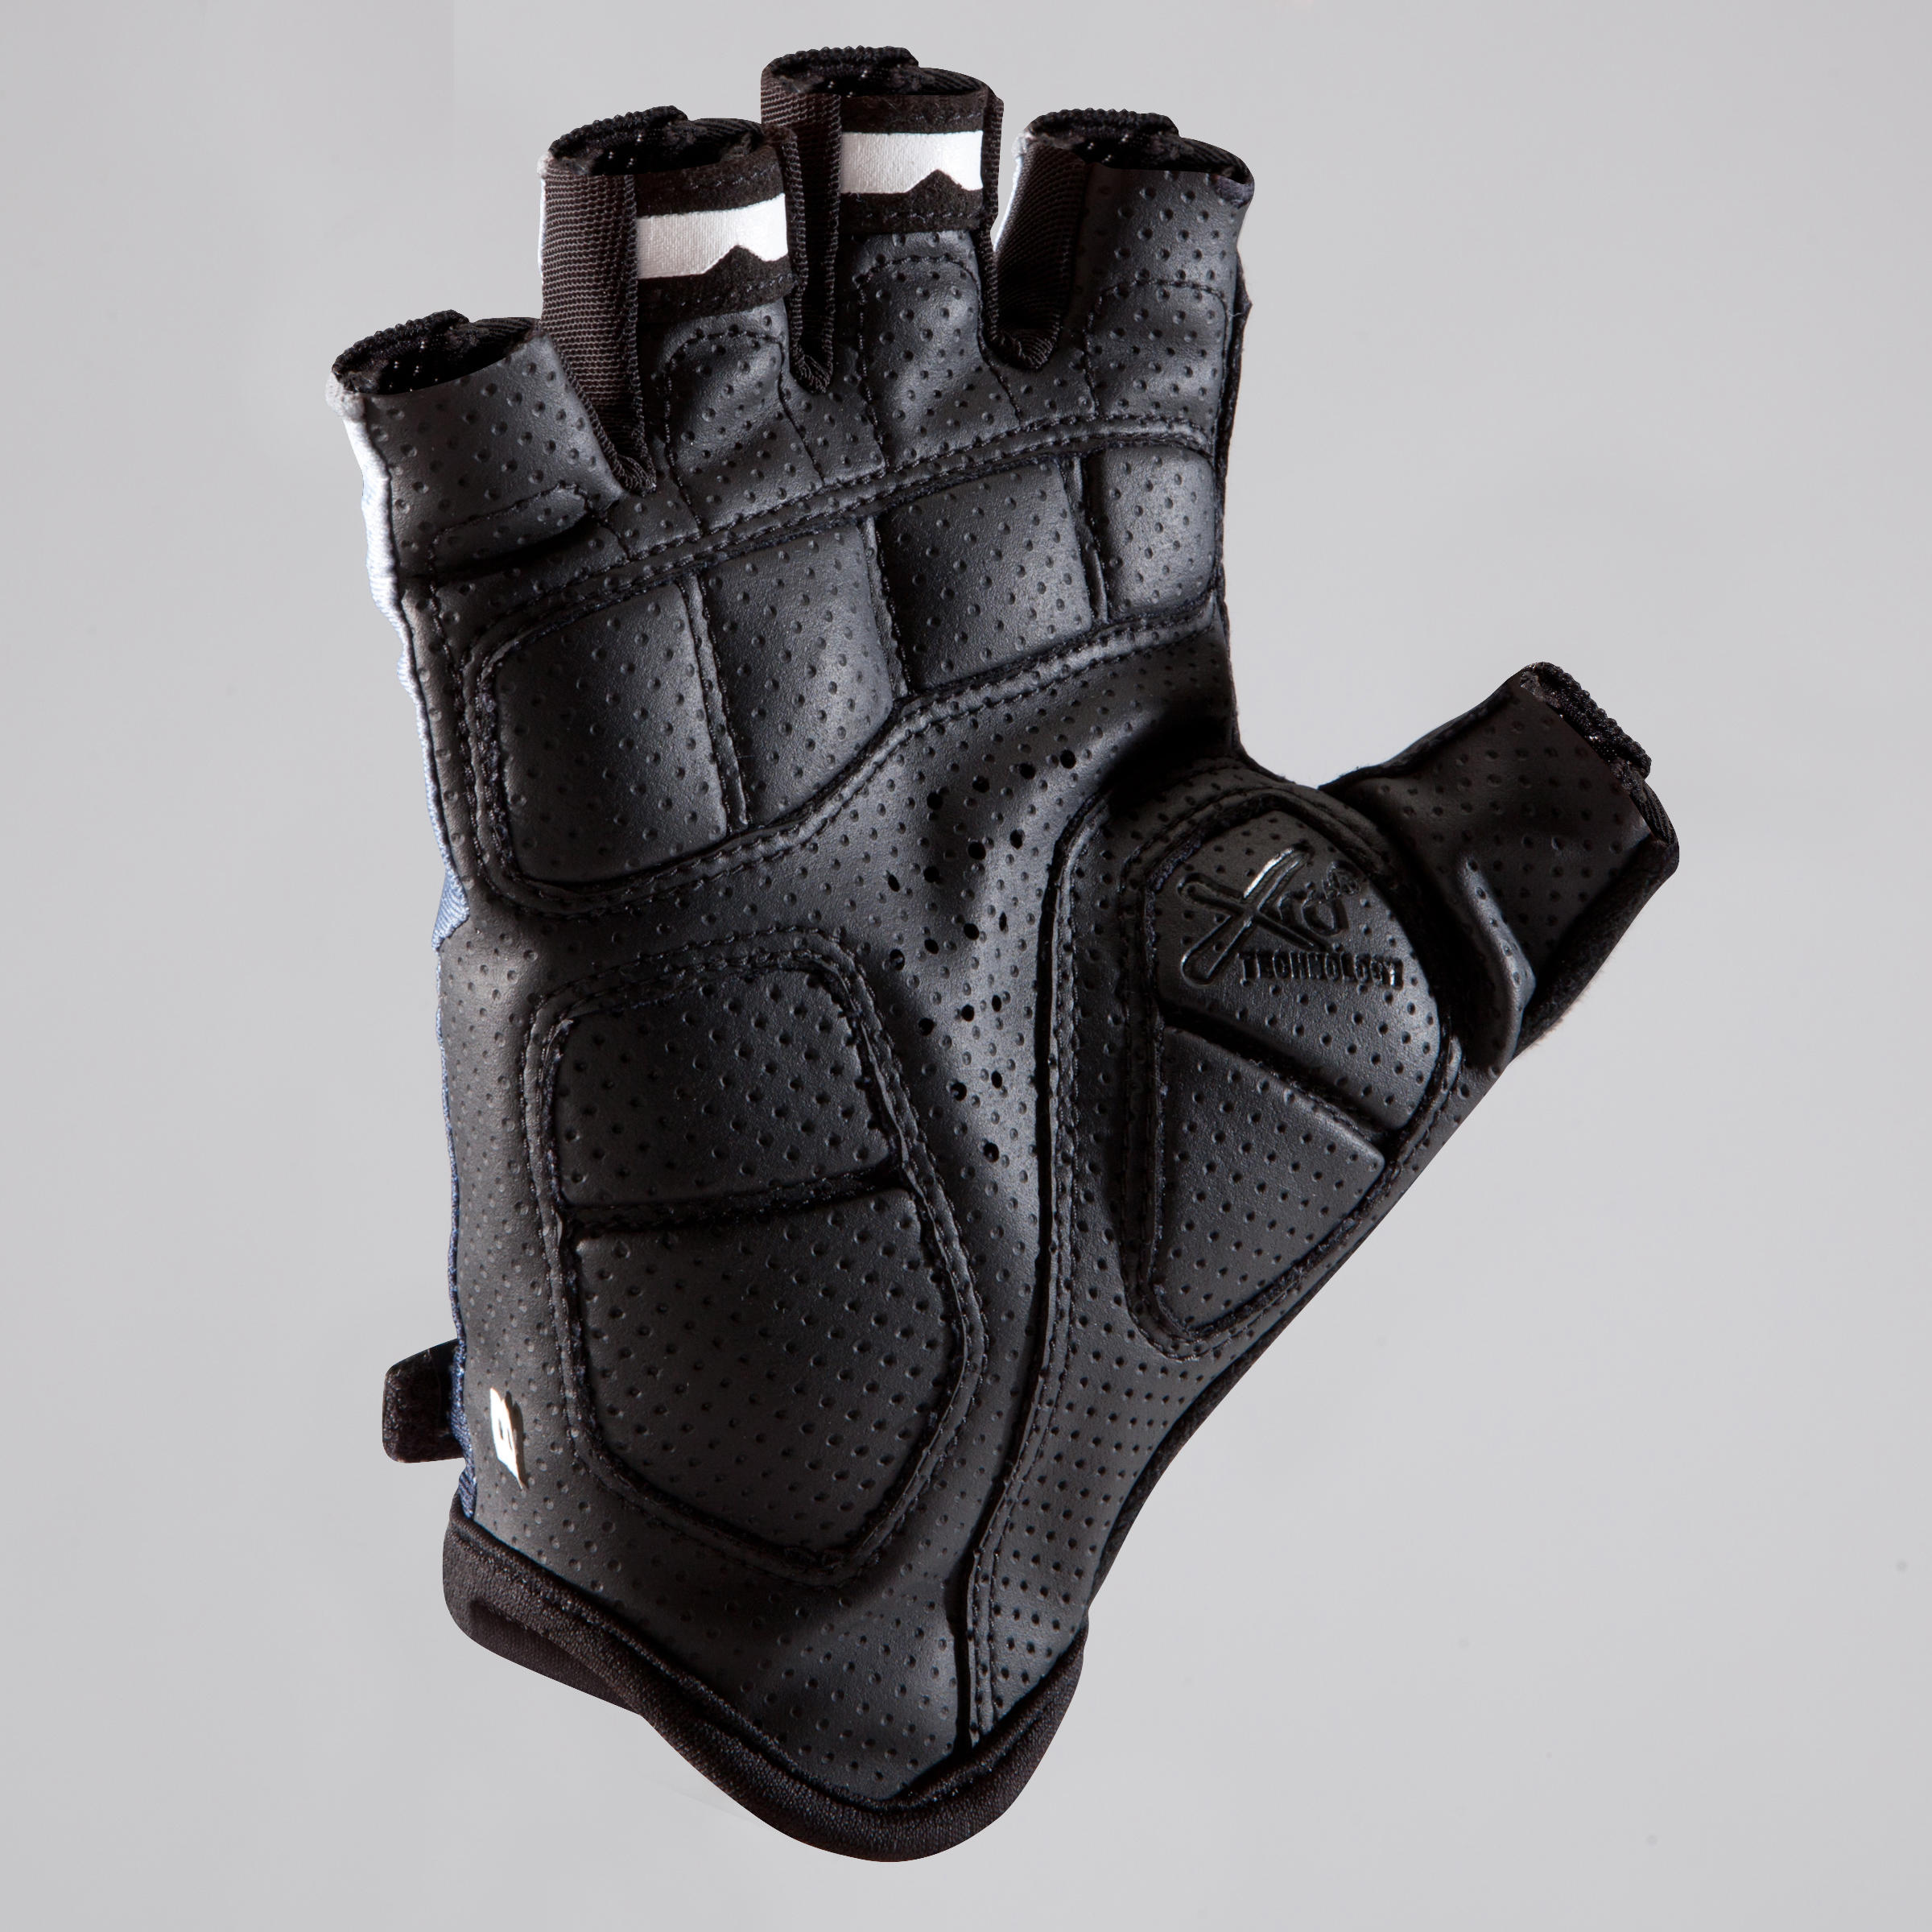 RoadC 900 Cycling Gloves - Shaded Blue